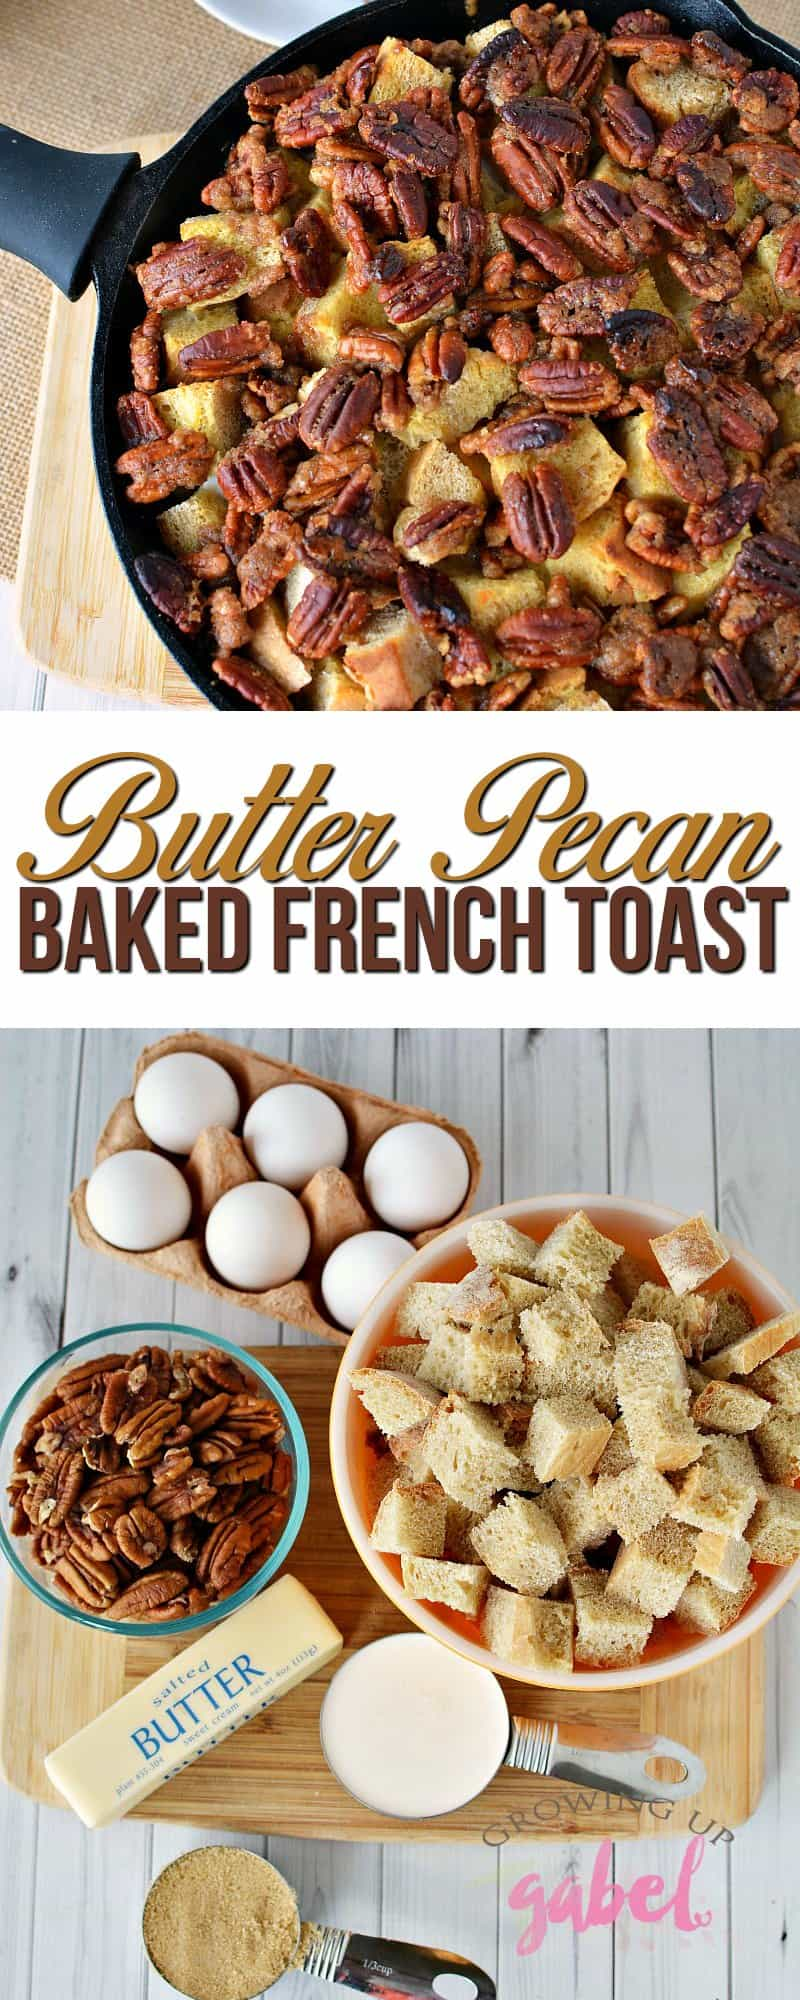 Make this buttery sweet Butter Pecan French Toast Bake in a cast iron skillet! Use homemade or store bought bread and pecans. Ready the same day - no prep needed!